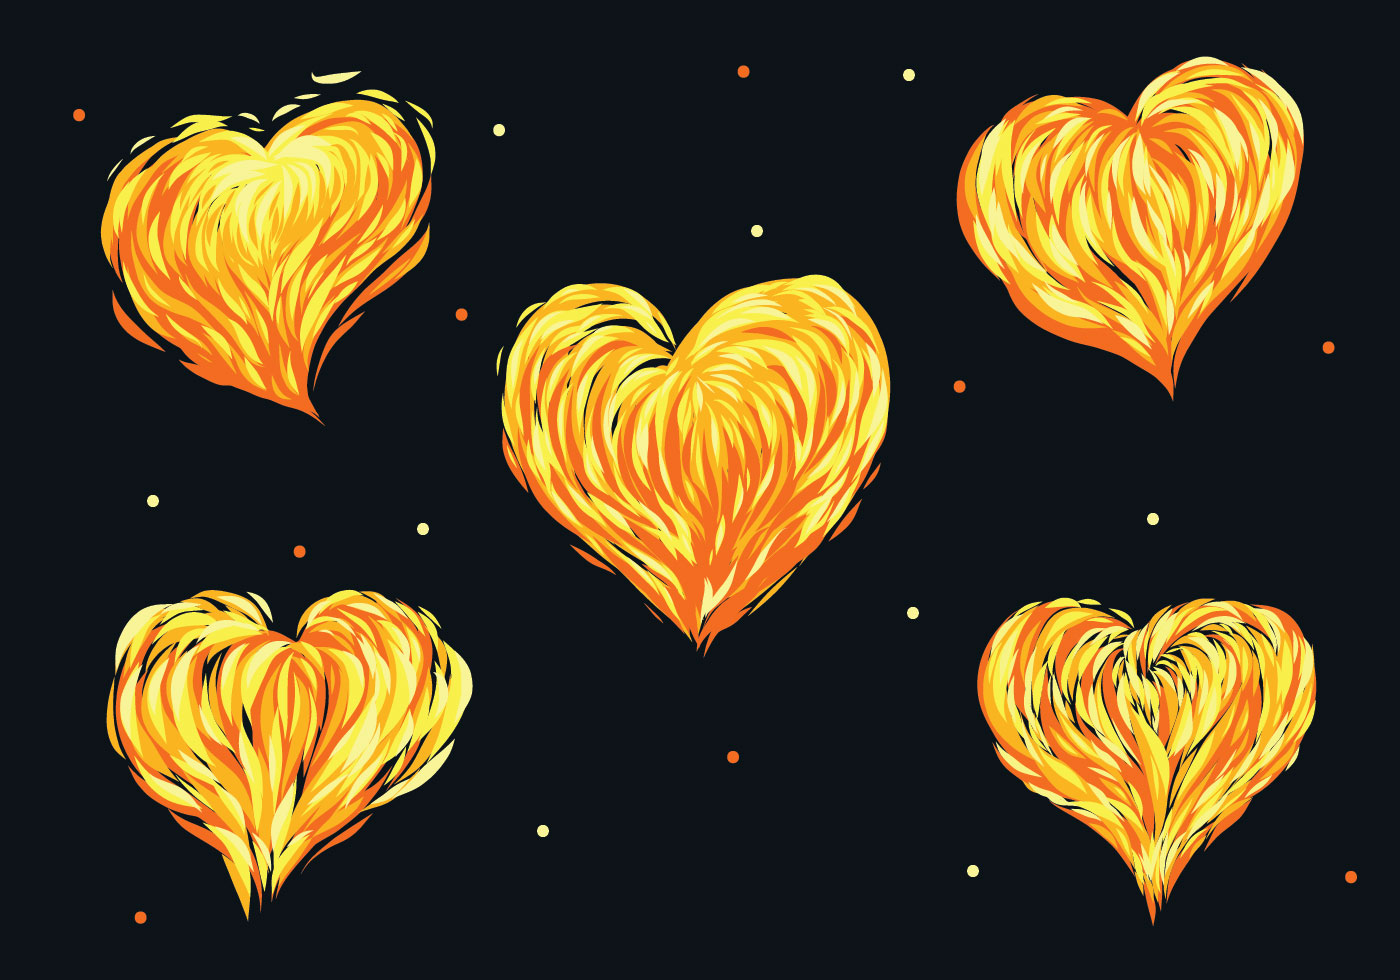 Flaming Heart Vector Pack - Download Free Vectors, Clipart